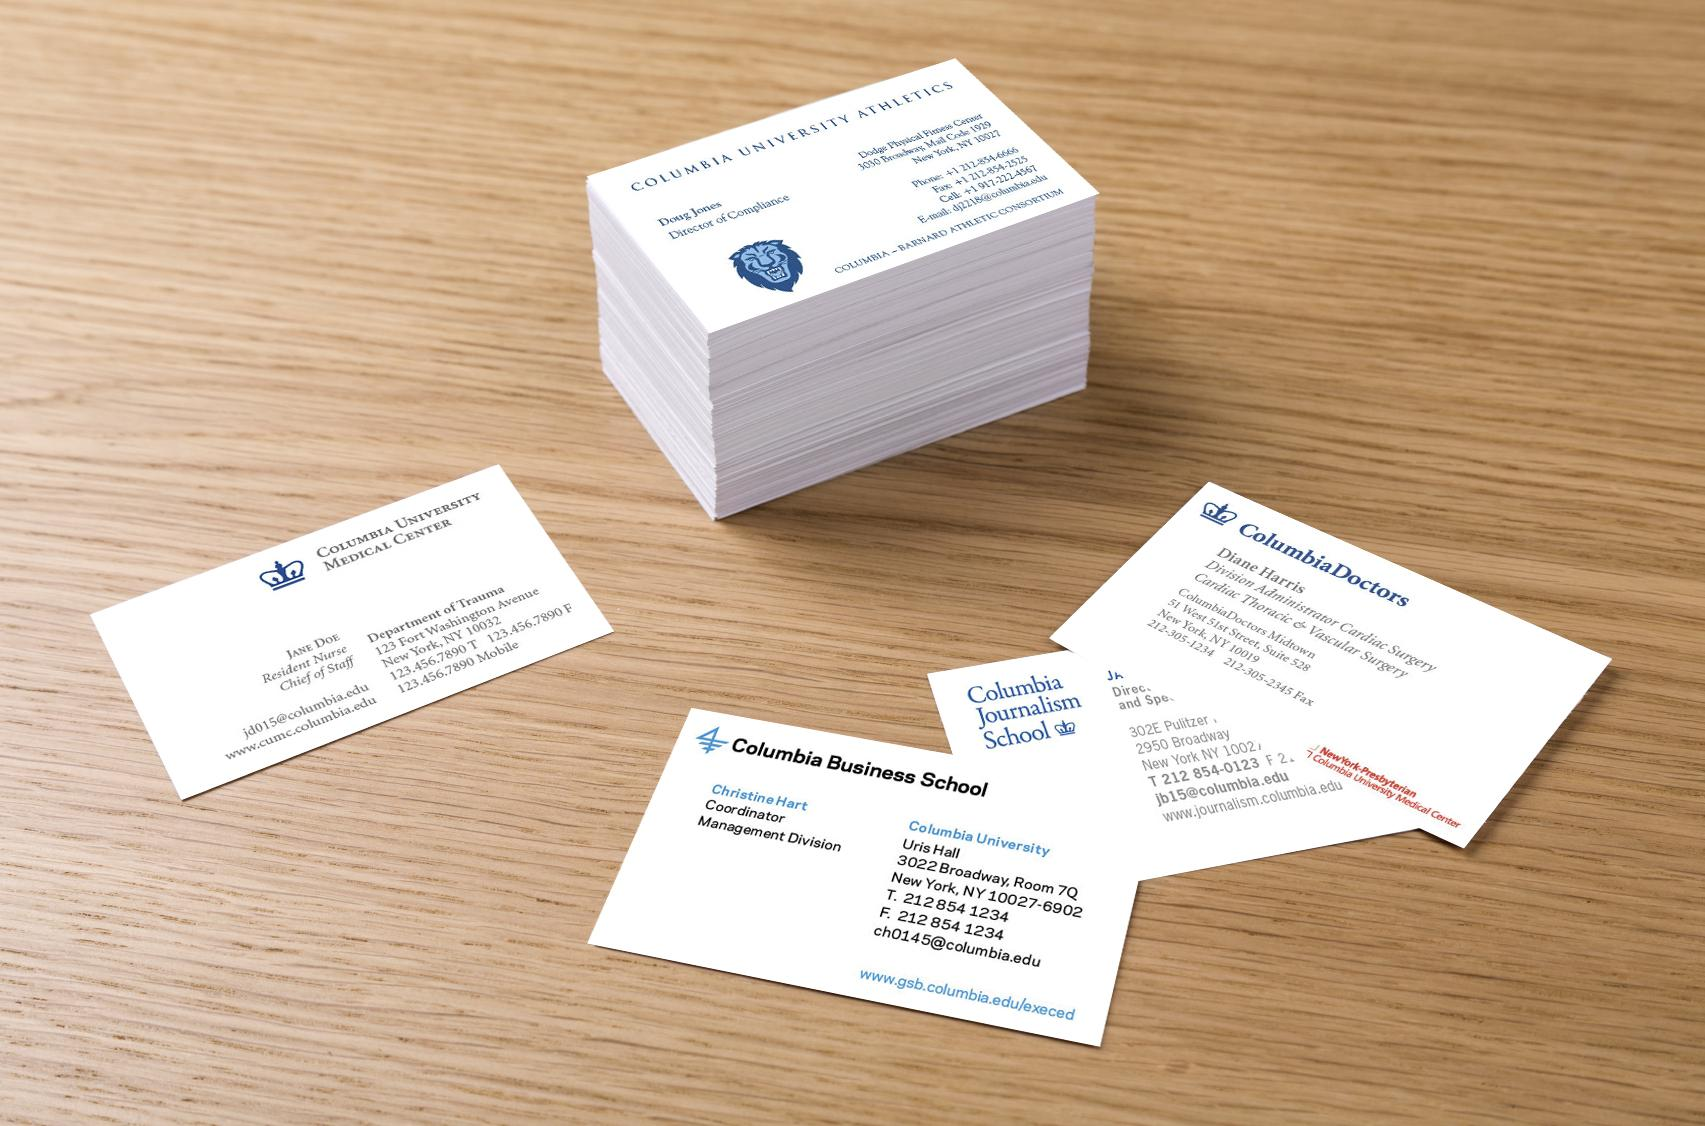 Business cards columbia print business card samples colourmoves Image collections